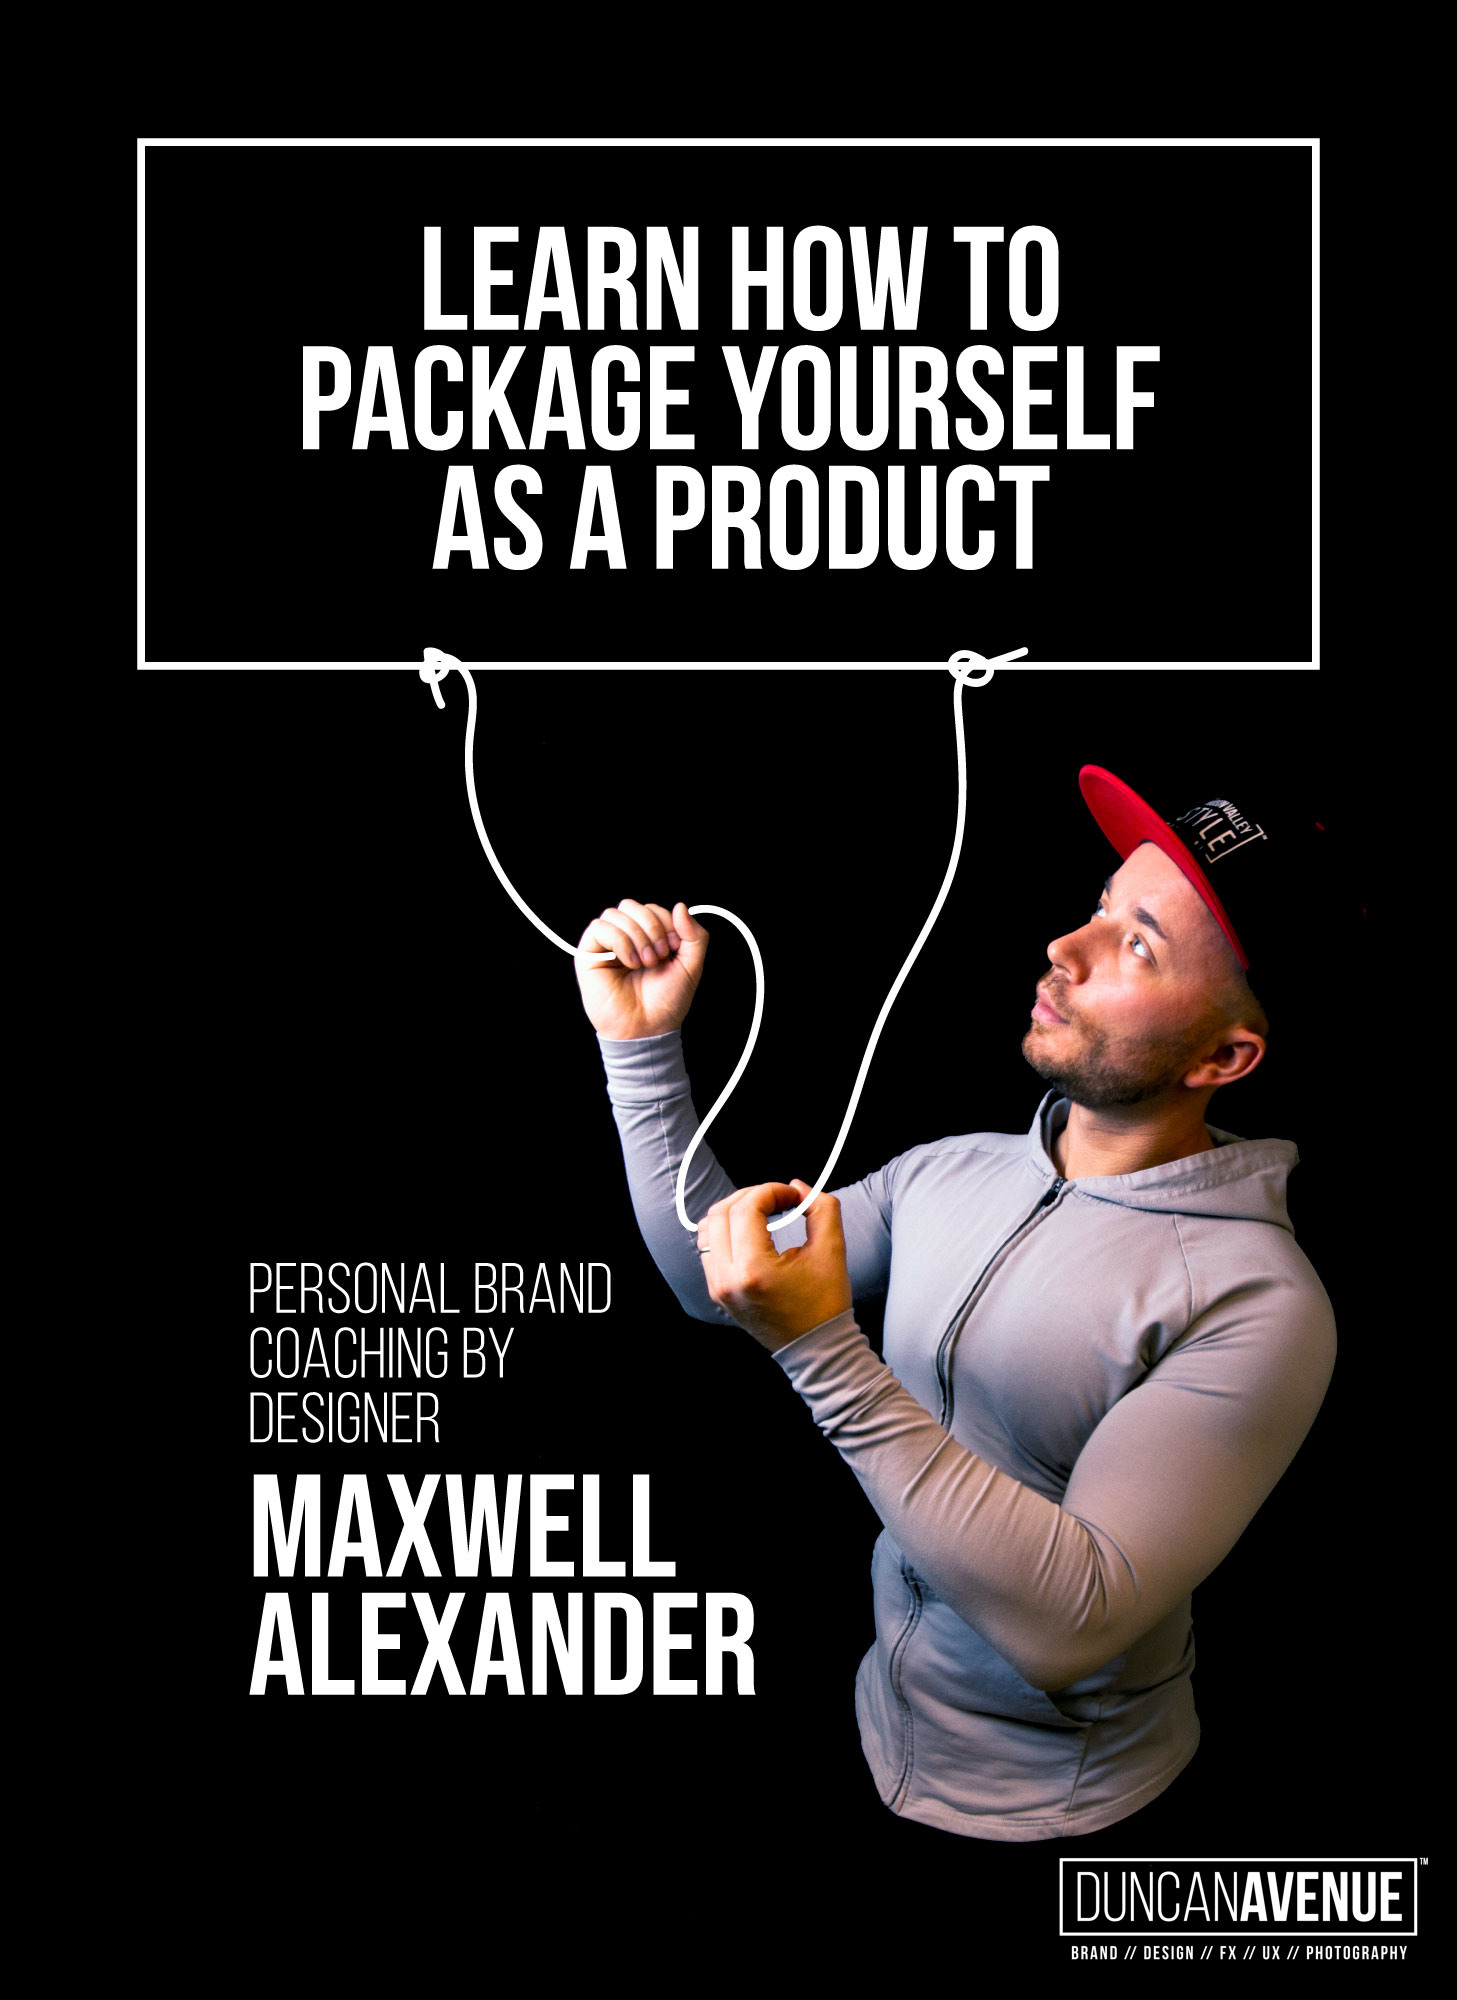 Learn how to package yourself as a product - Personal Branding Coaching by Designer Maxwell Alexander